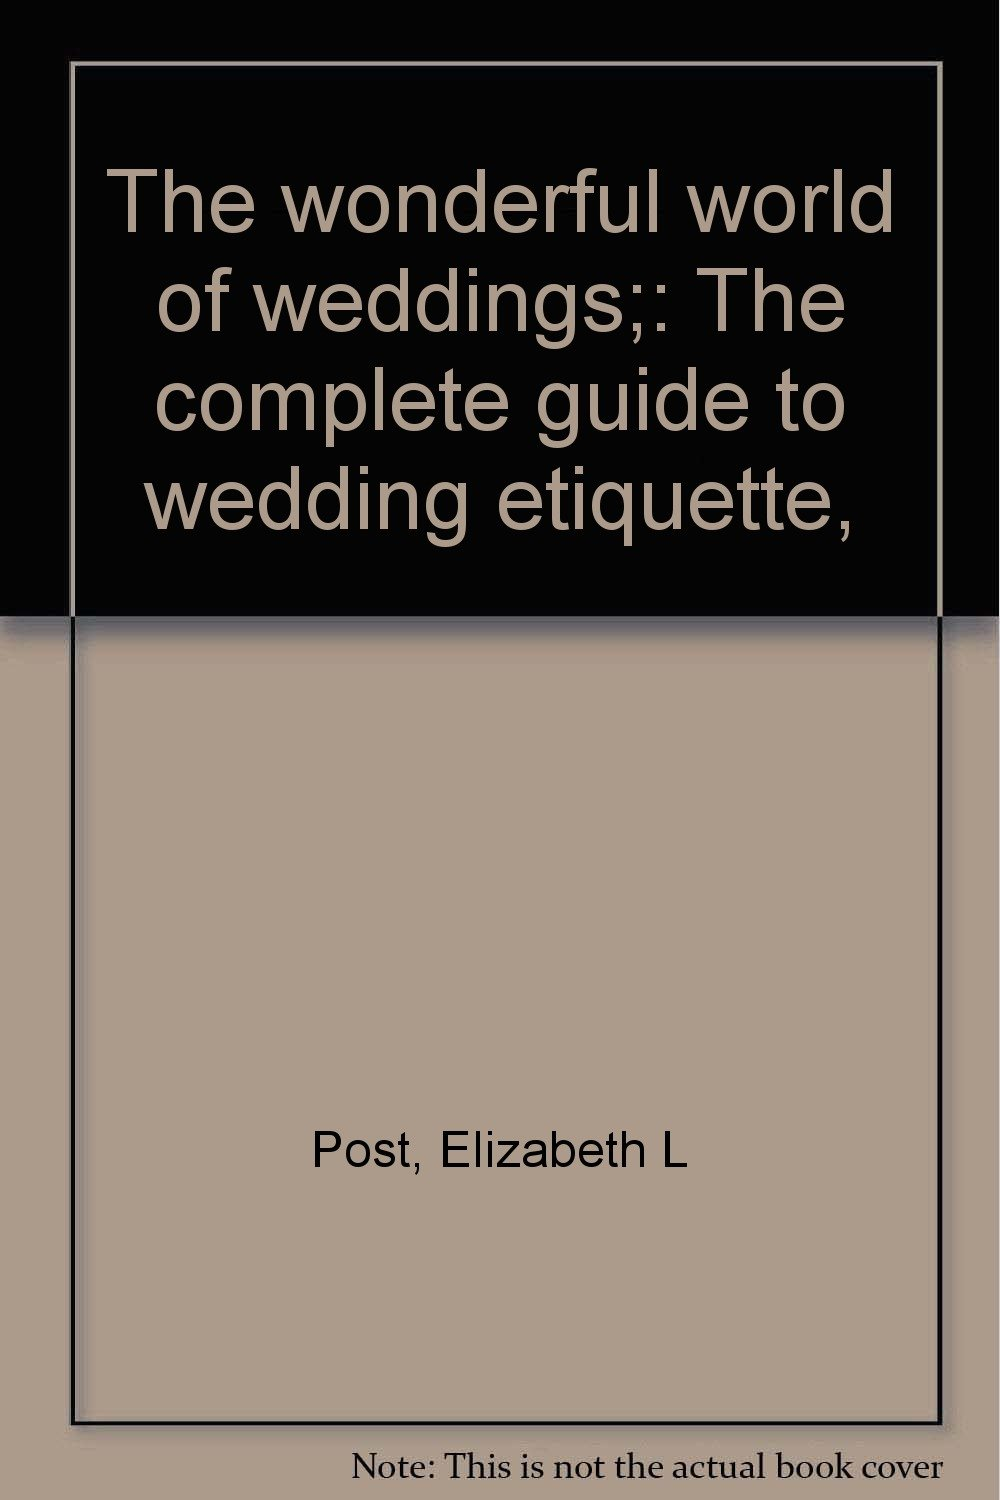 The wonderful world of weddings;: The complete guide to wedding etiquette,